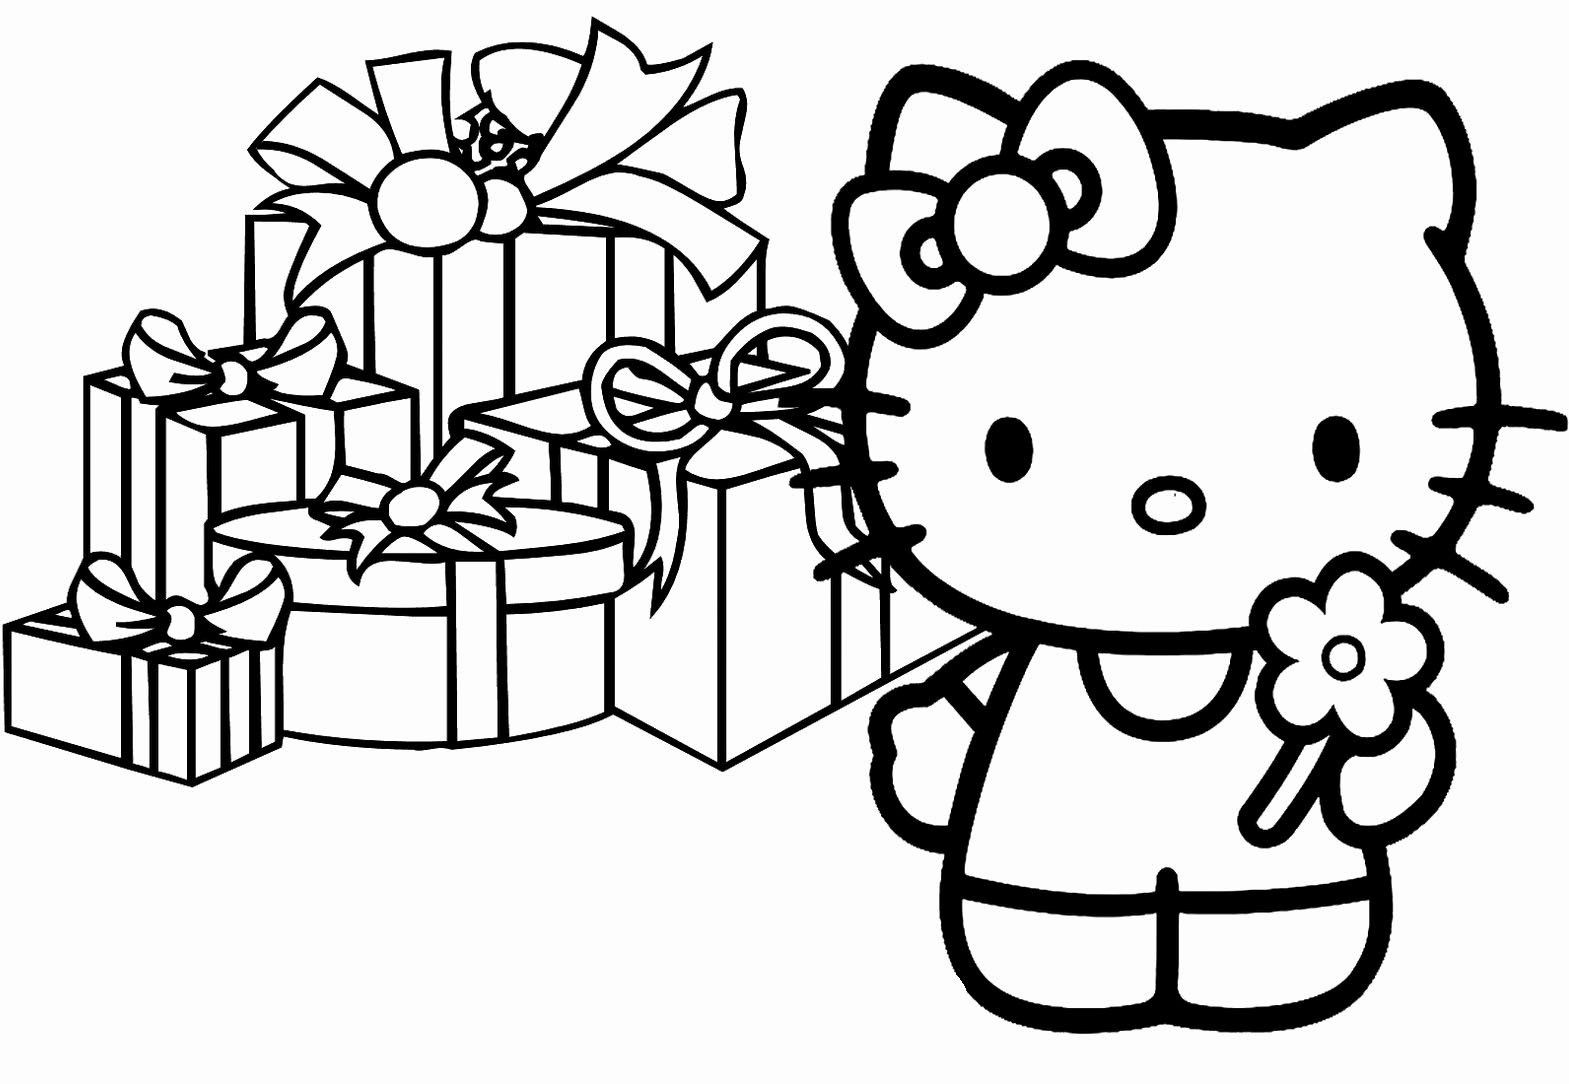 24 Happy Anniversary Coloring Page Birthday Coloring Pages Hello Kitty Colouring Pages Christmas Coloring Pages